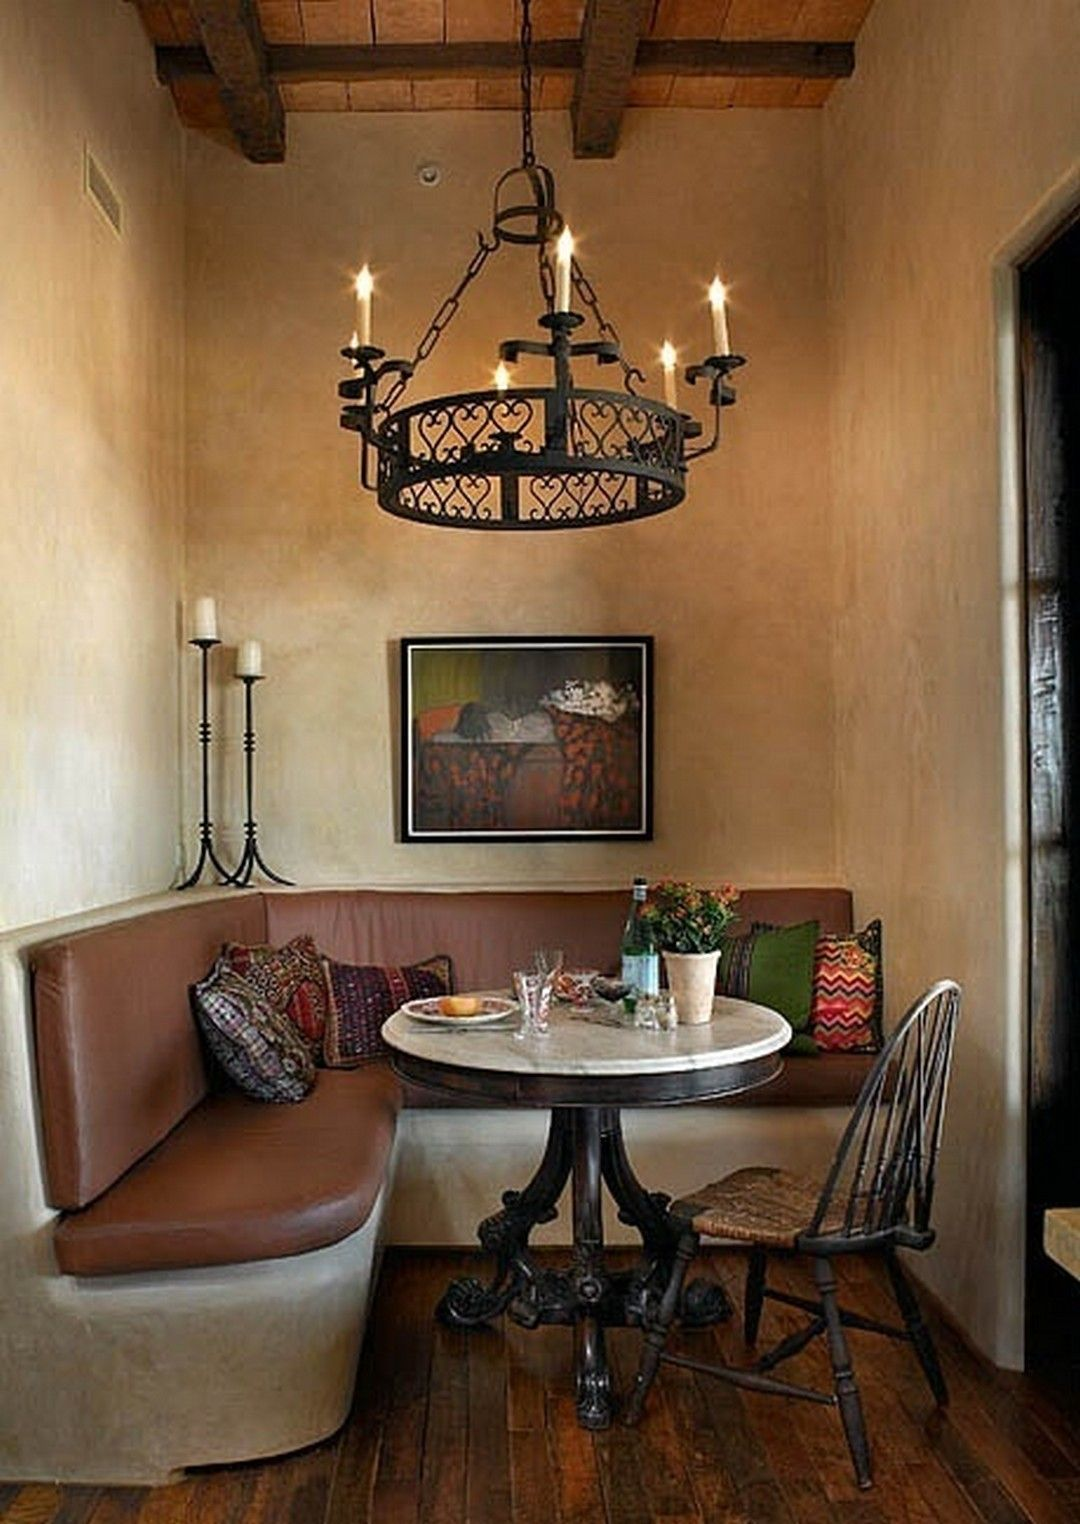 Spanish Farmhouse Design 99 Inpiration Photos  Farmhouse Design Mesmerizing Dining Room Spanish Translation Design Ideas